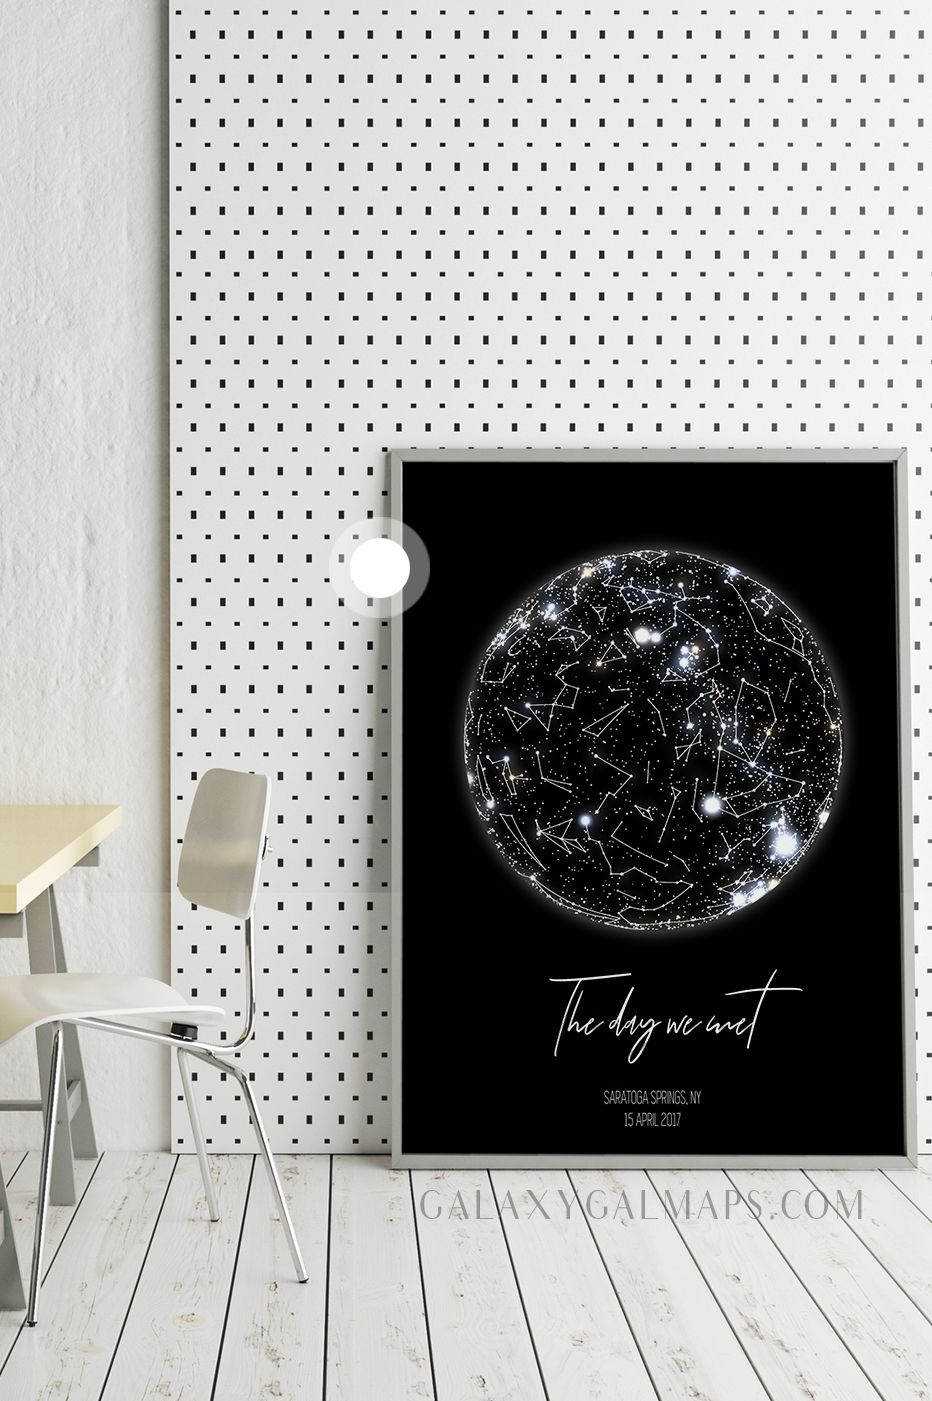 Unique Sky Map For Your Date Constellation Art Wall Art Woman Portrait Printables Set Repeat Pa Star Map Gender Neutral Decor Boyfriend Anniversary Gifts